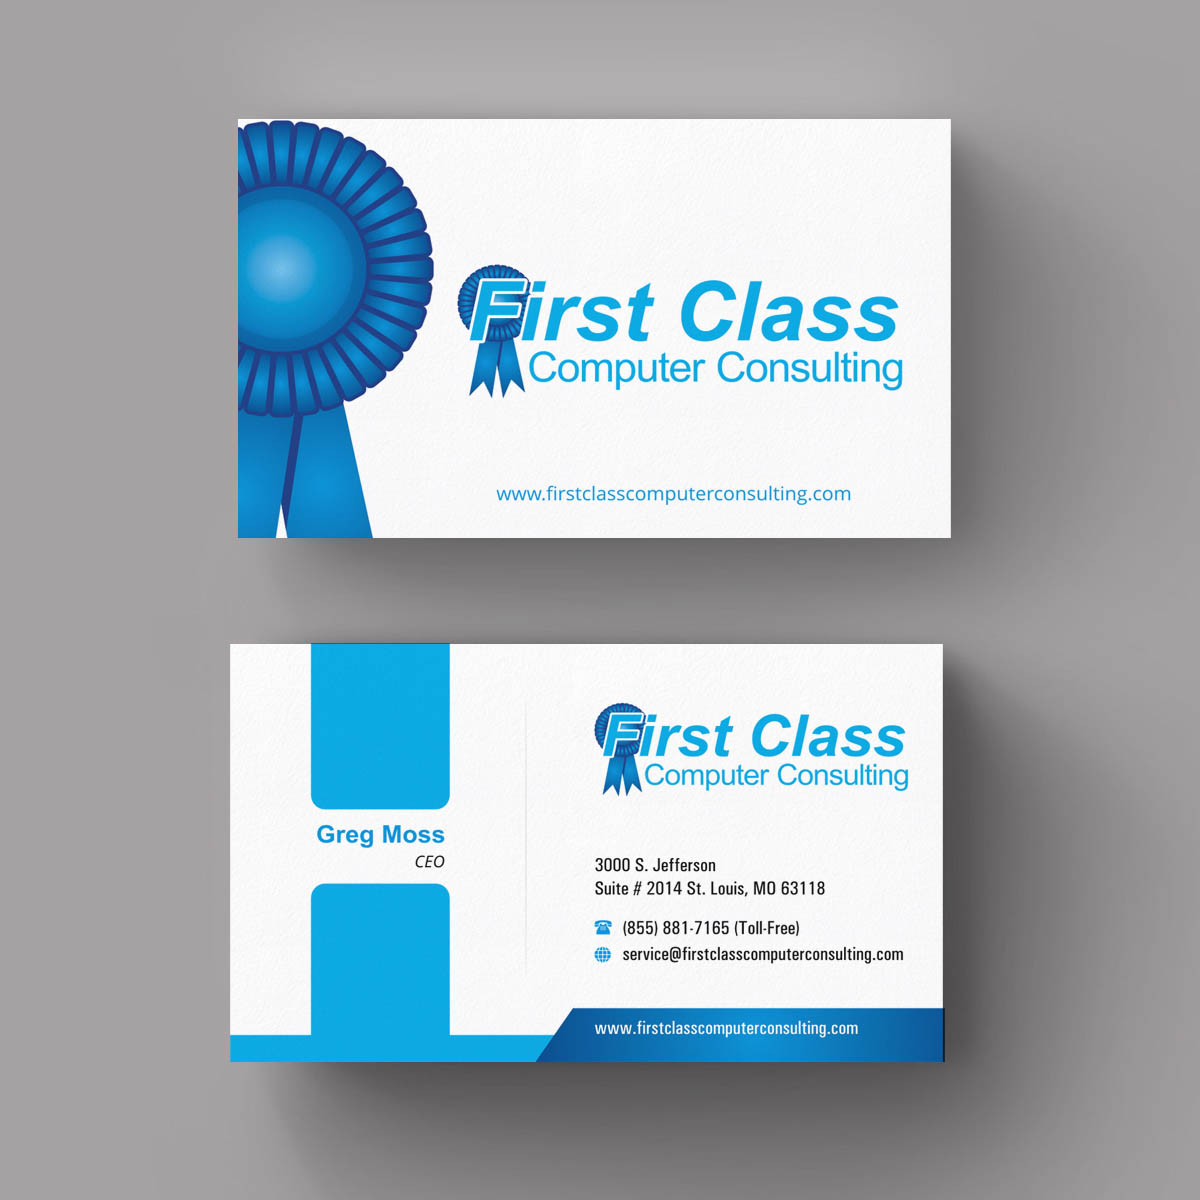 Elegant playful business business card design for first class business card design by indianashok for first class ventures llc design 7430251 colourmoves